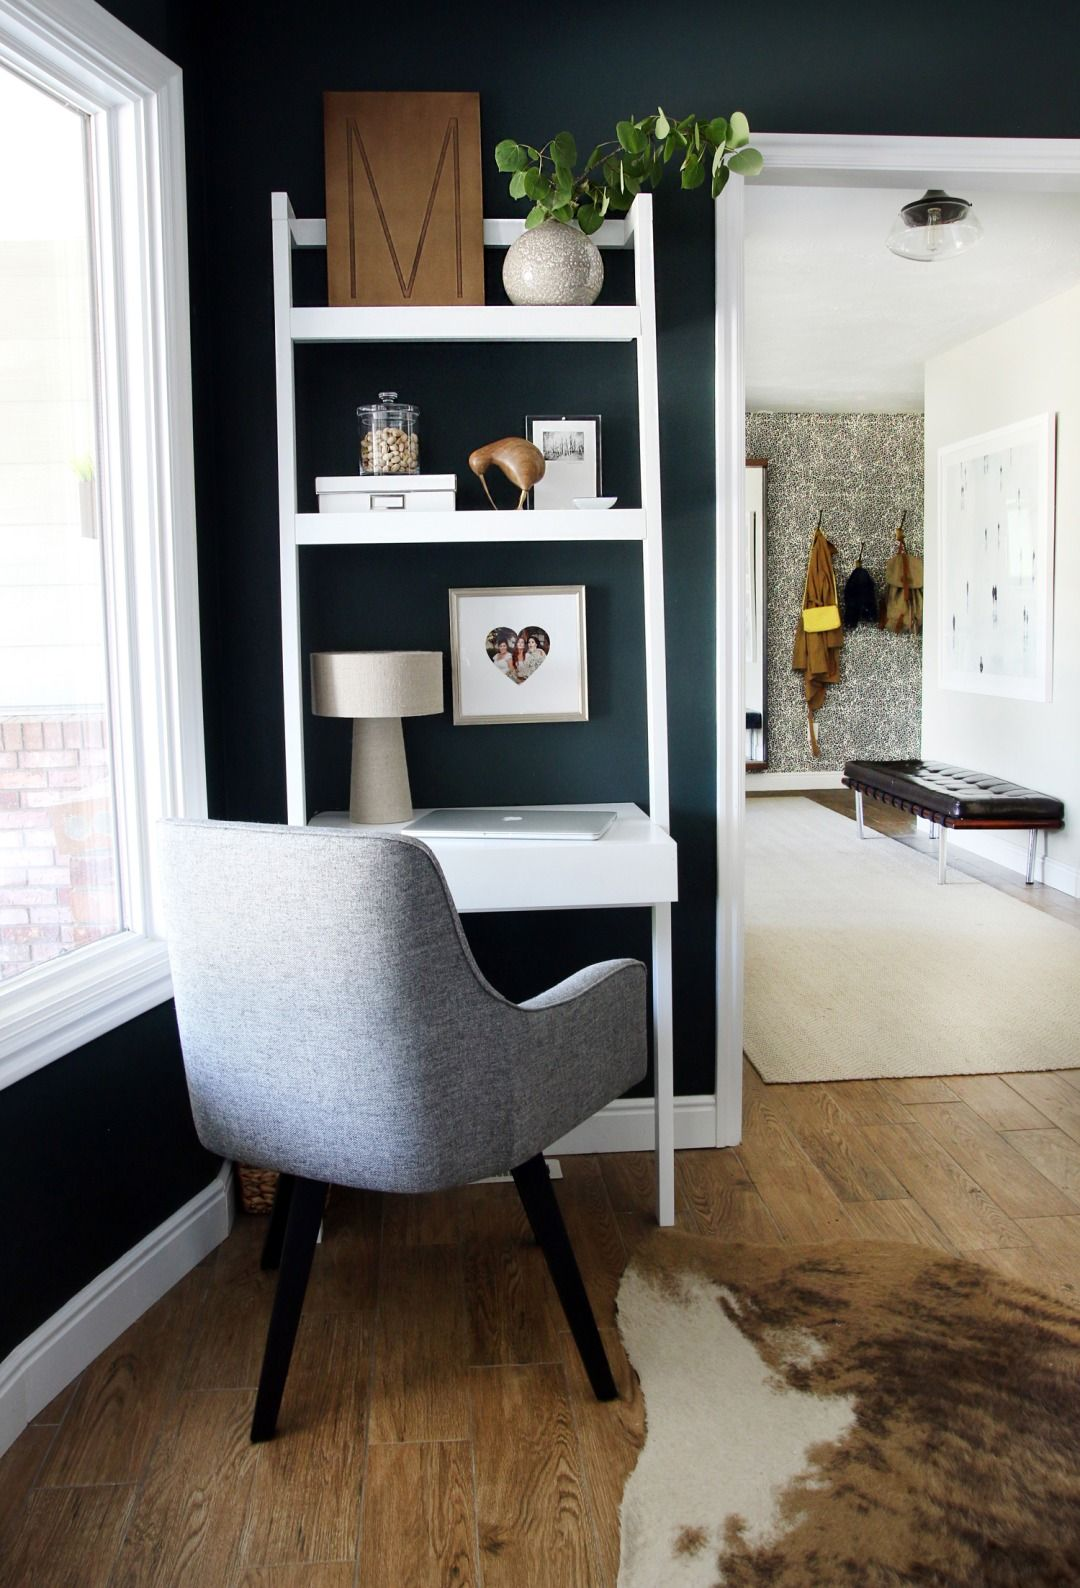 Create A Stylish Productive Little Nook Even When E Is With Our Chic Modern Home Office Ideas For Small Es From Chrislovesjulia